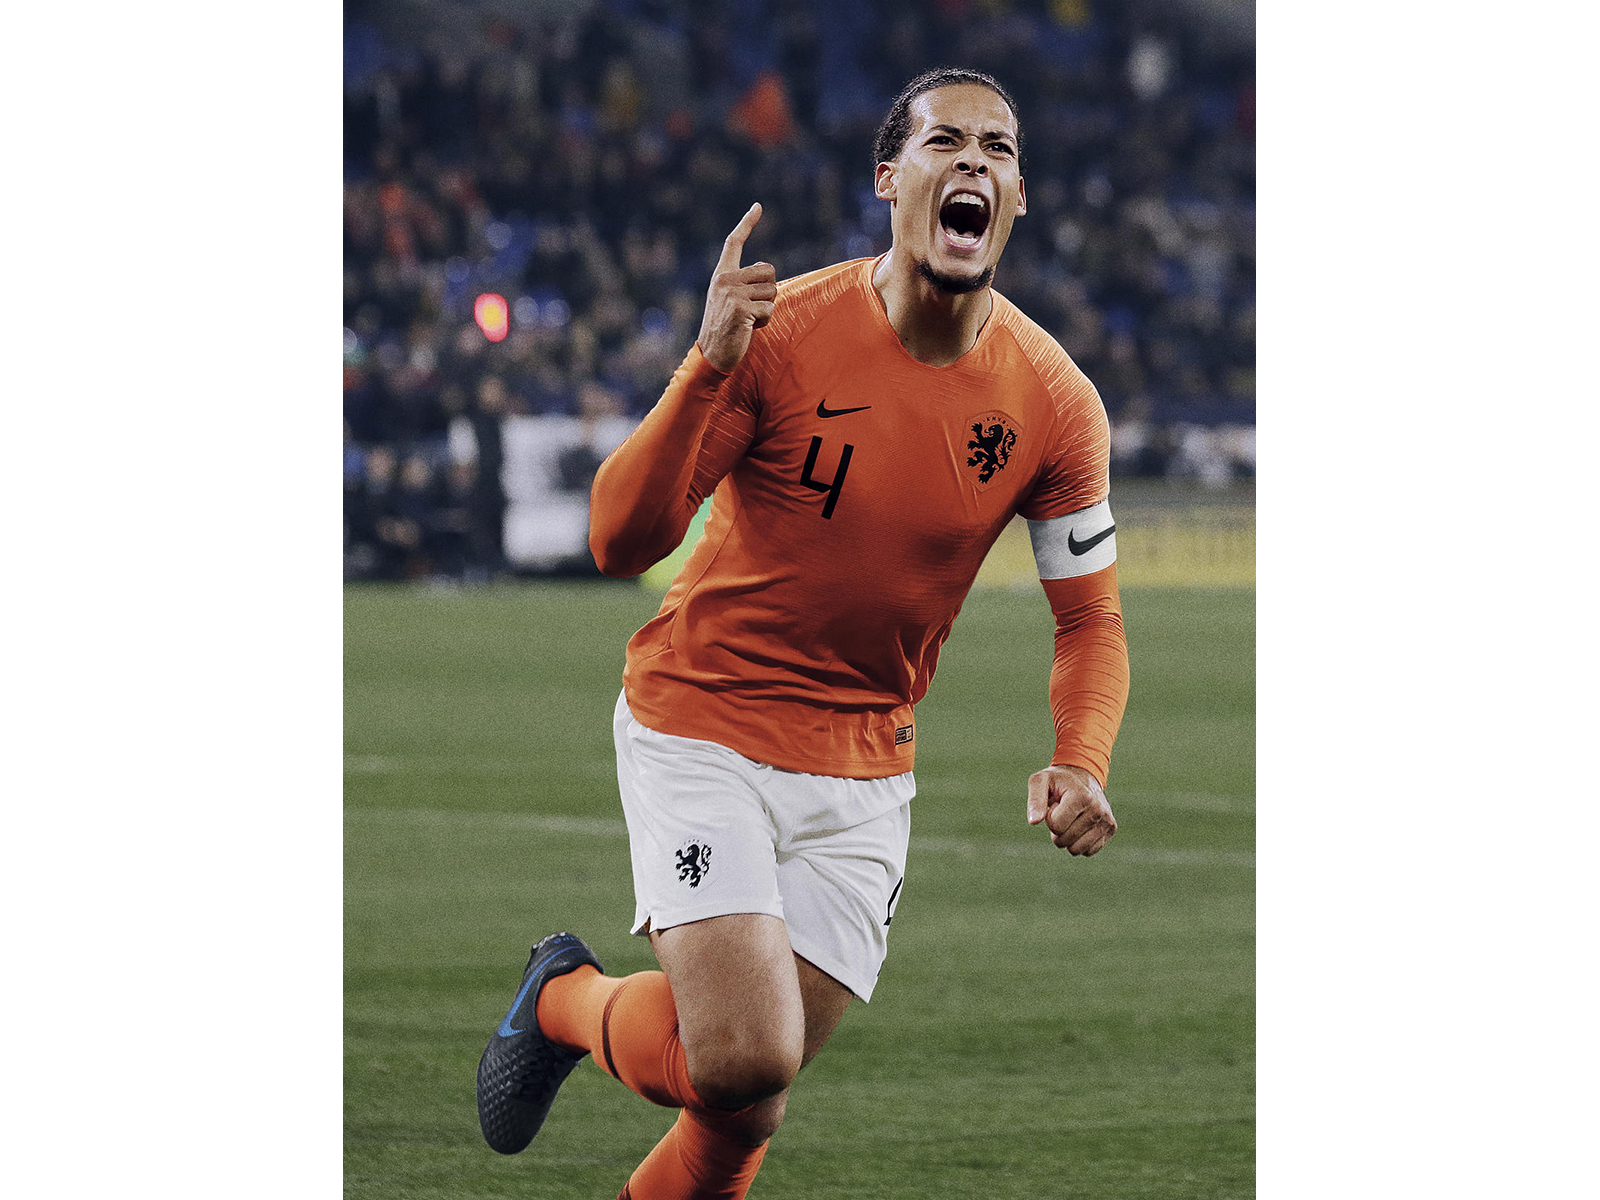 FA19_GFB_Tiempo_VirgilVanDijk_Celebration_Color_88612